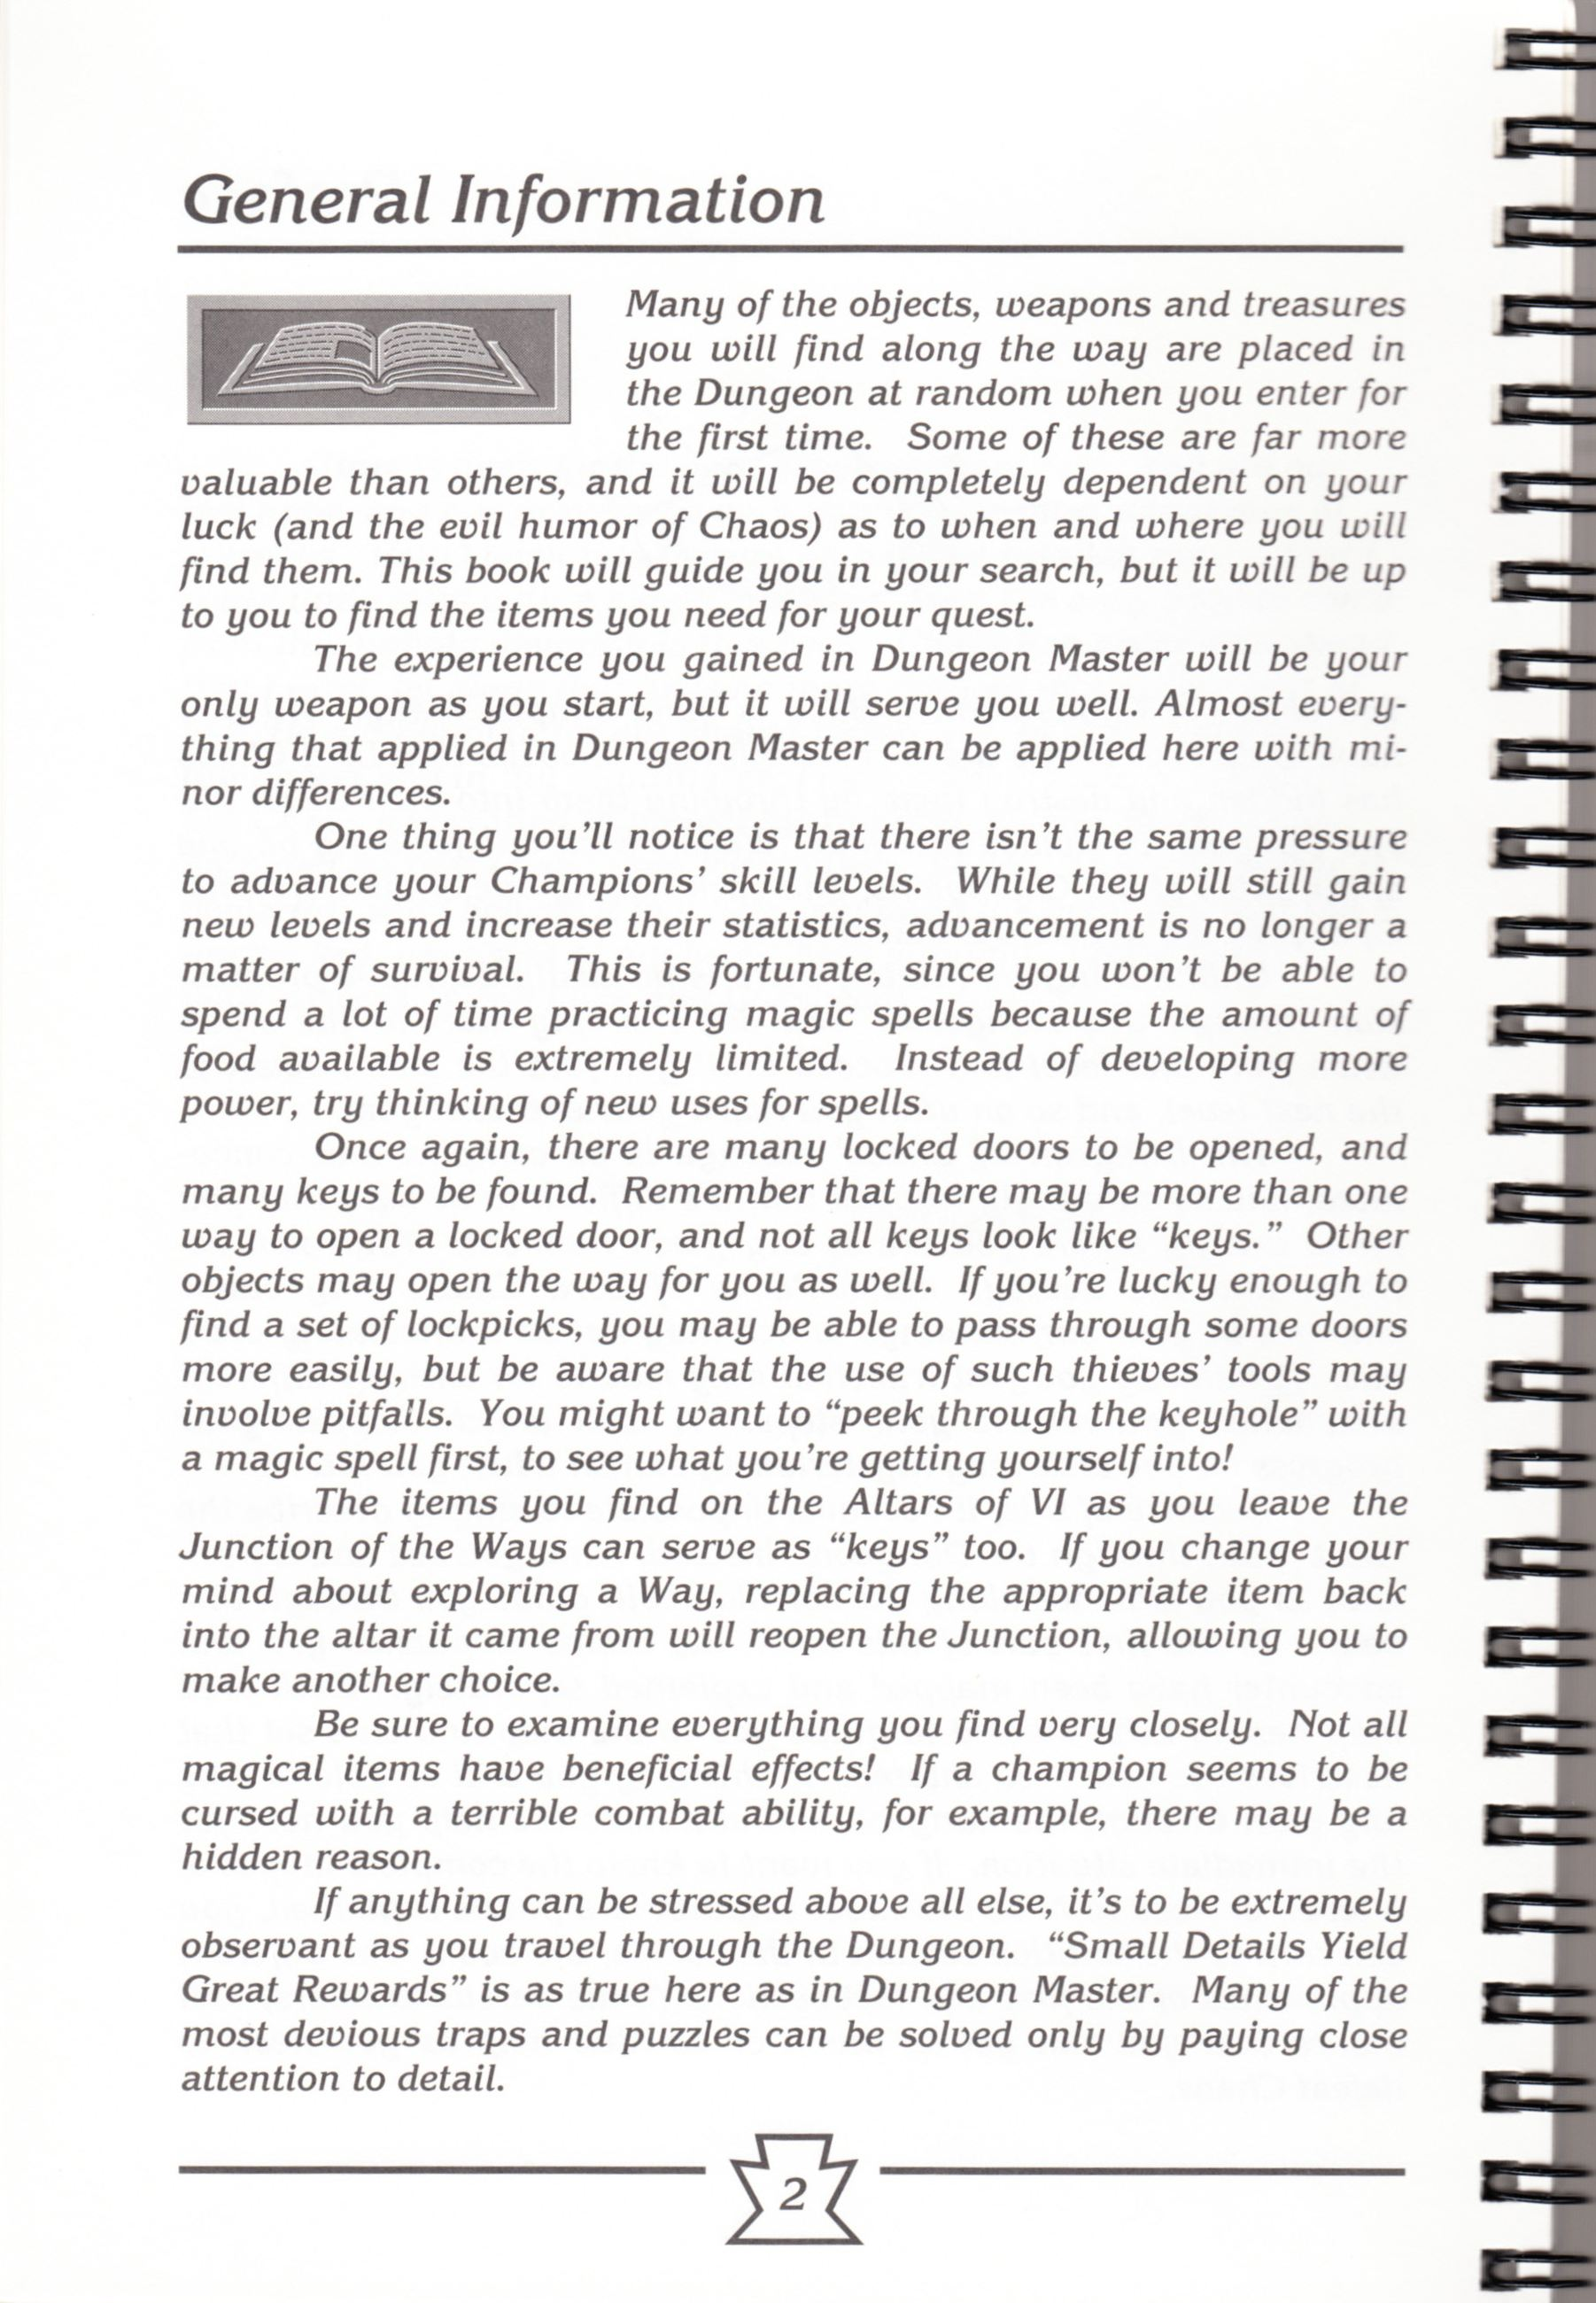 Hint Book - Chaos Strikes Back Adventurer's Handbook - US - Page 008 - Scan